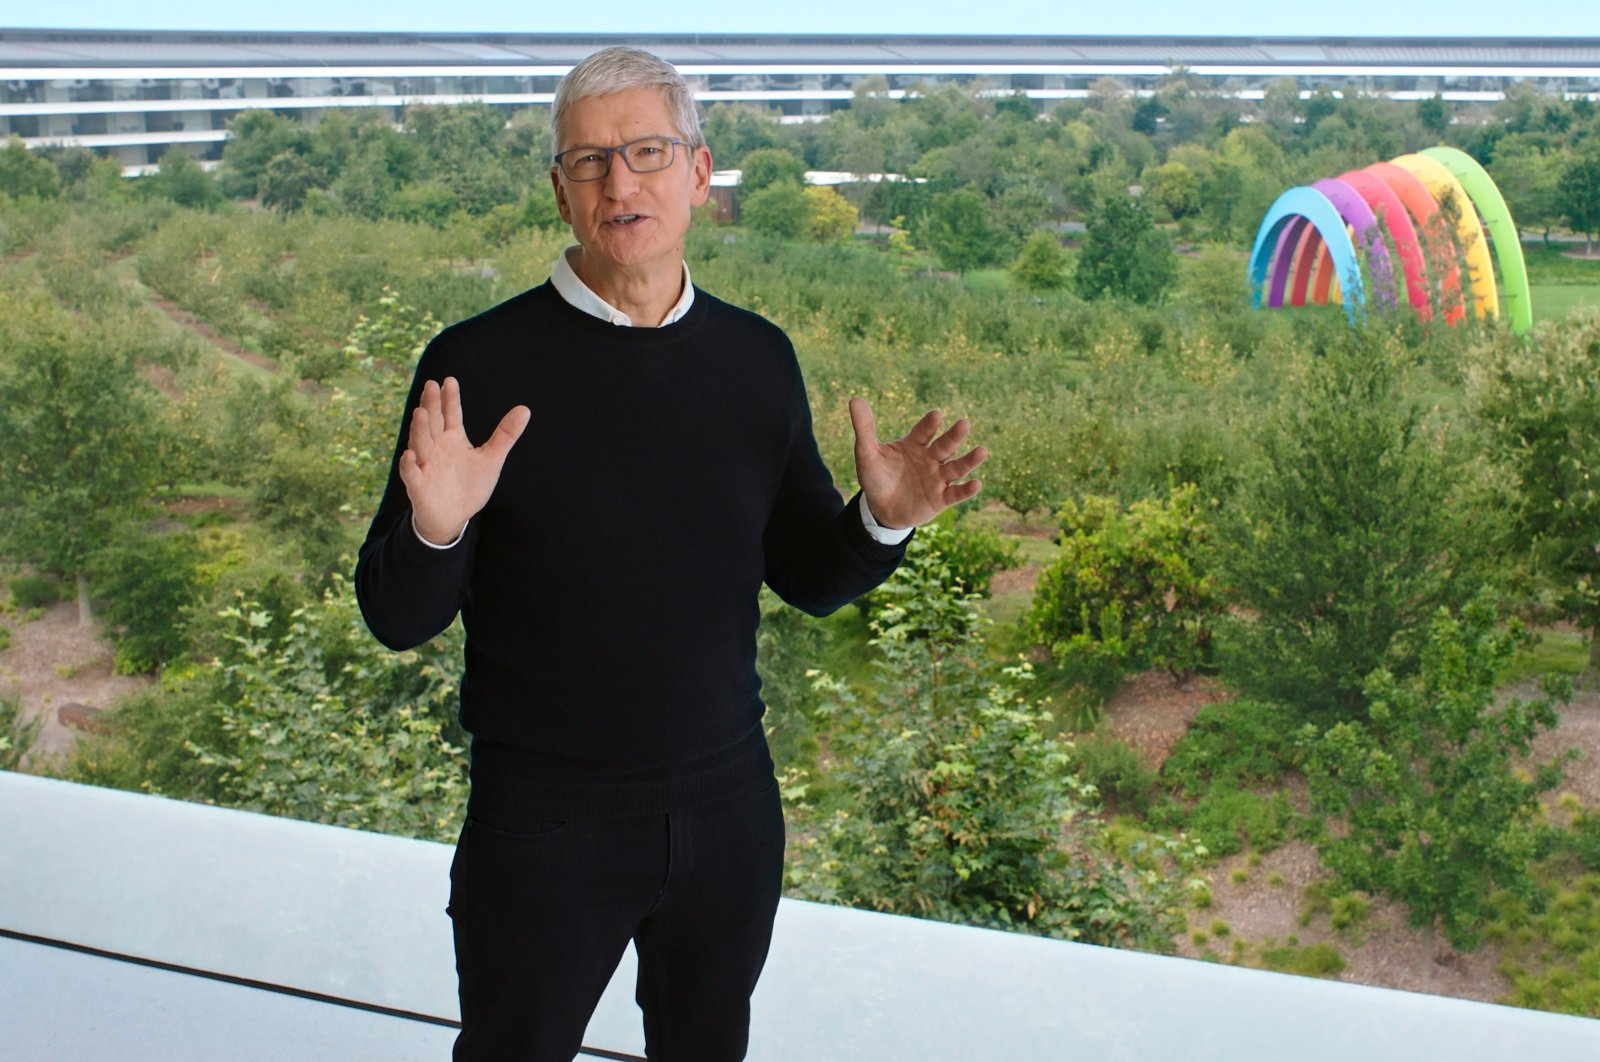 Apple CEO Tim Cook speaks during a special event at the company's headquarters in Cupertino, Calif., in a still image from video released on Sept. 15, 2020. (Reuters Photo)